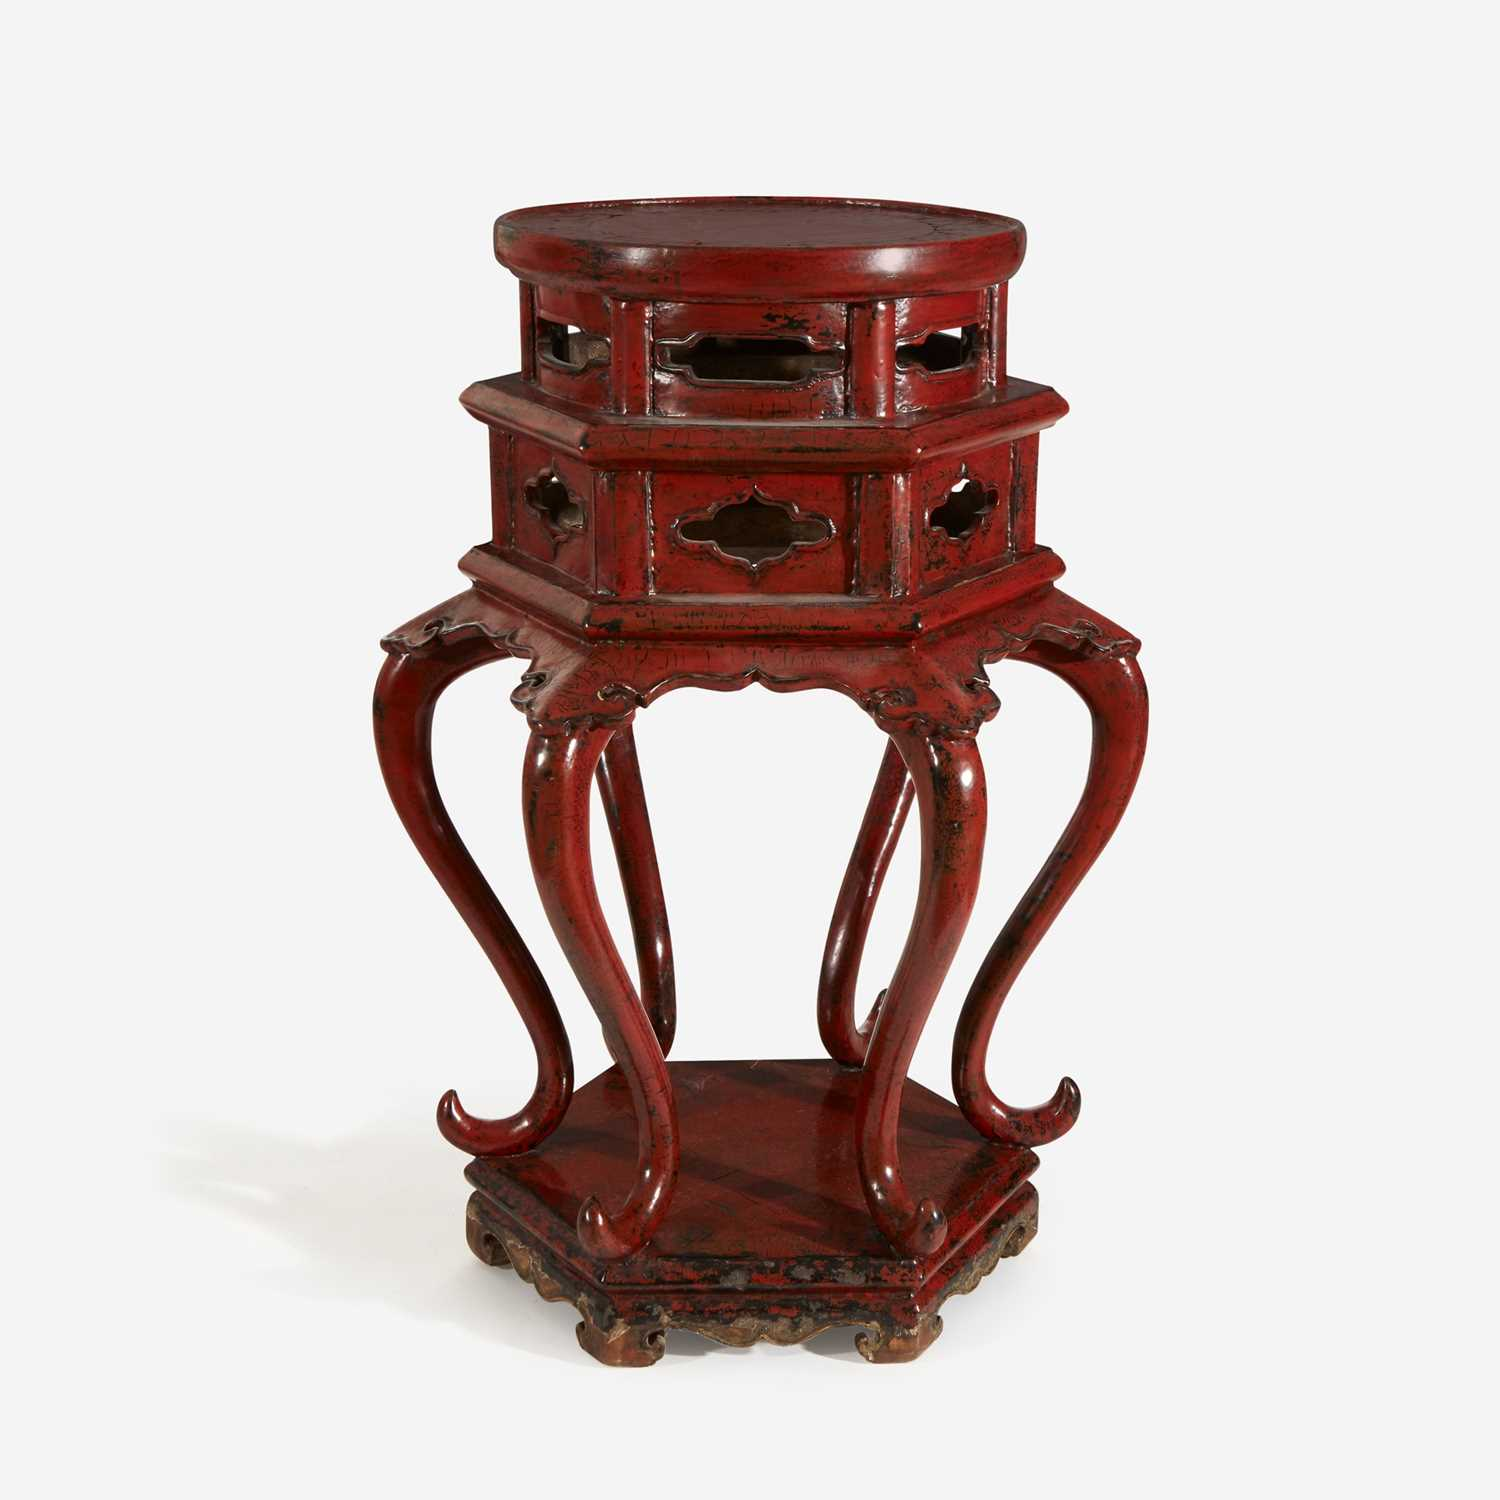 Lot 33 - A Chinese or Japanese red lacquered Ming-style hexagonal incense stand